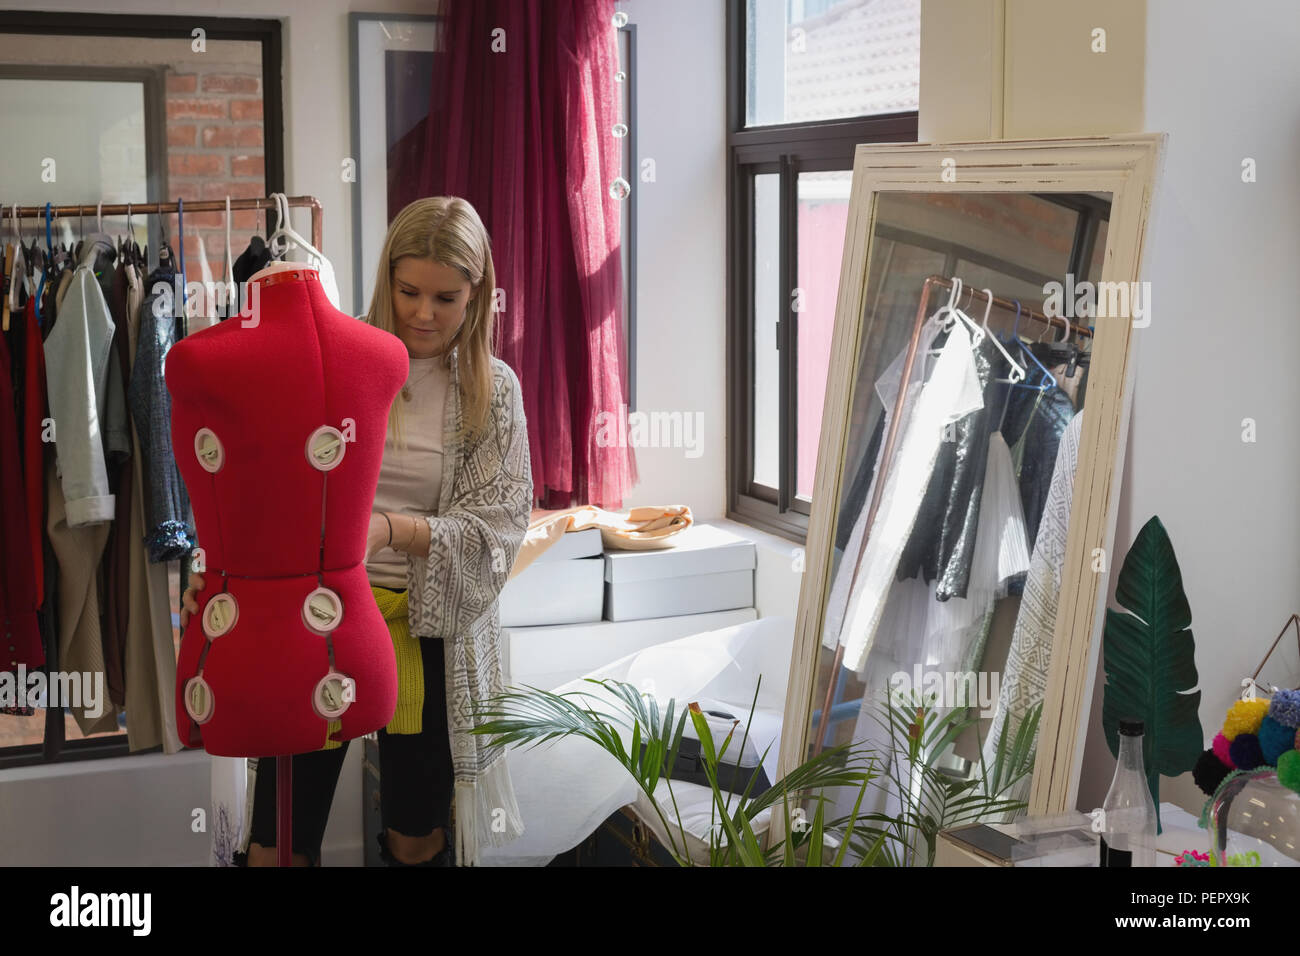 Fashion designer dressing mannequin - Stock Image